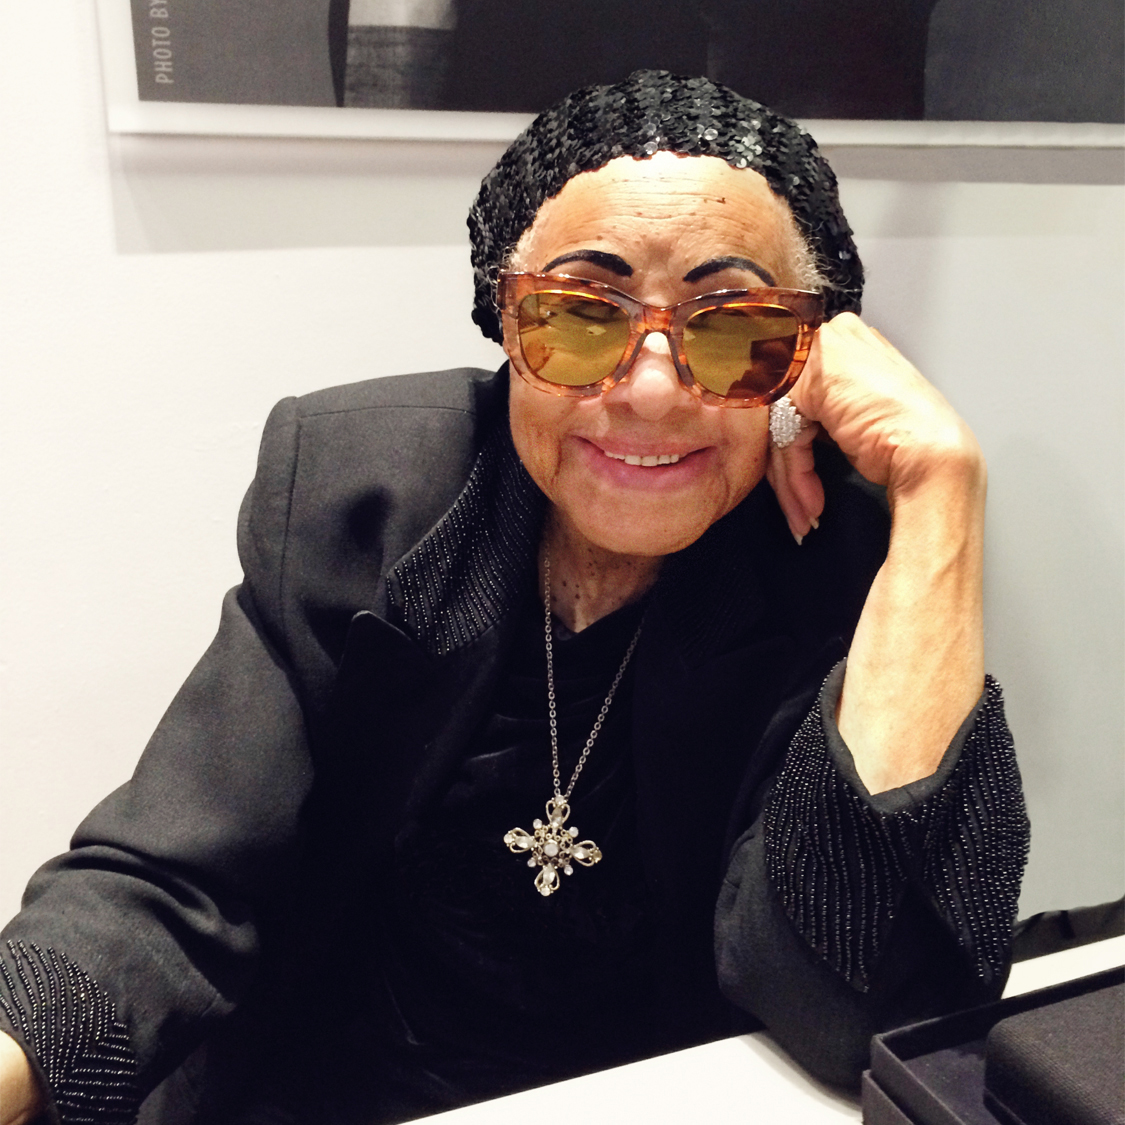 Legendary jazz singer Dawn Hampton, who inspired the name for MYKITA / Damir Doma's female sunglasses DAWN.